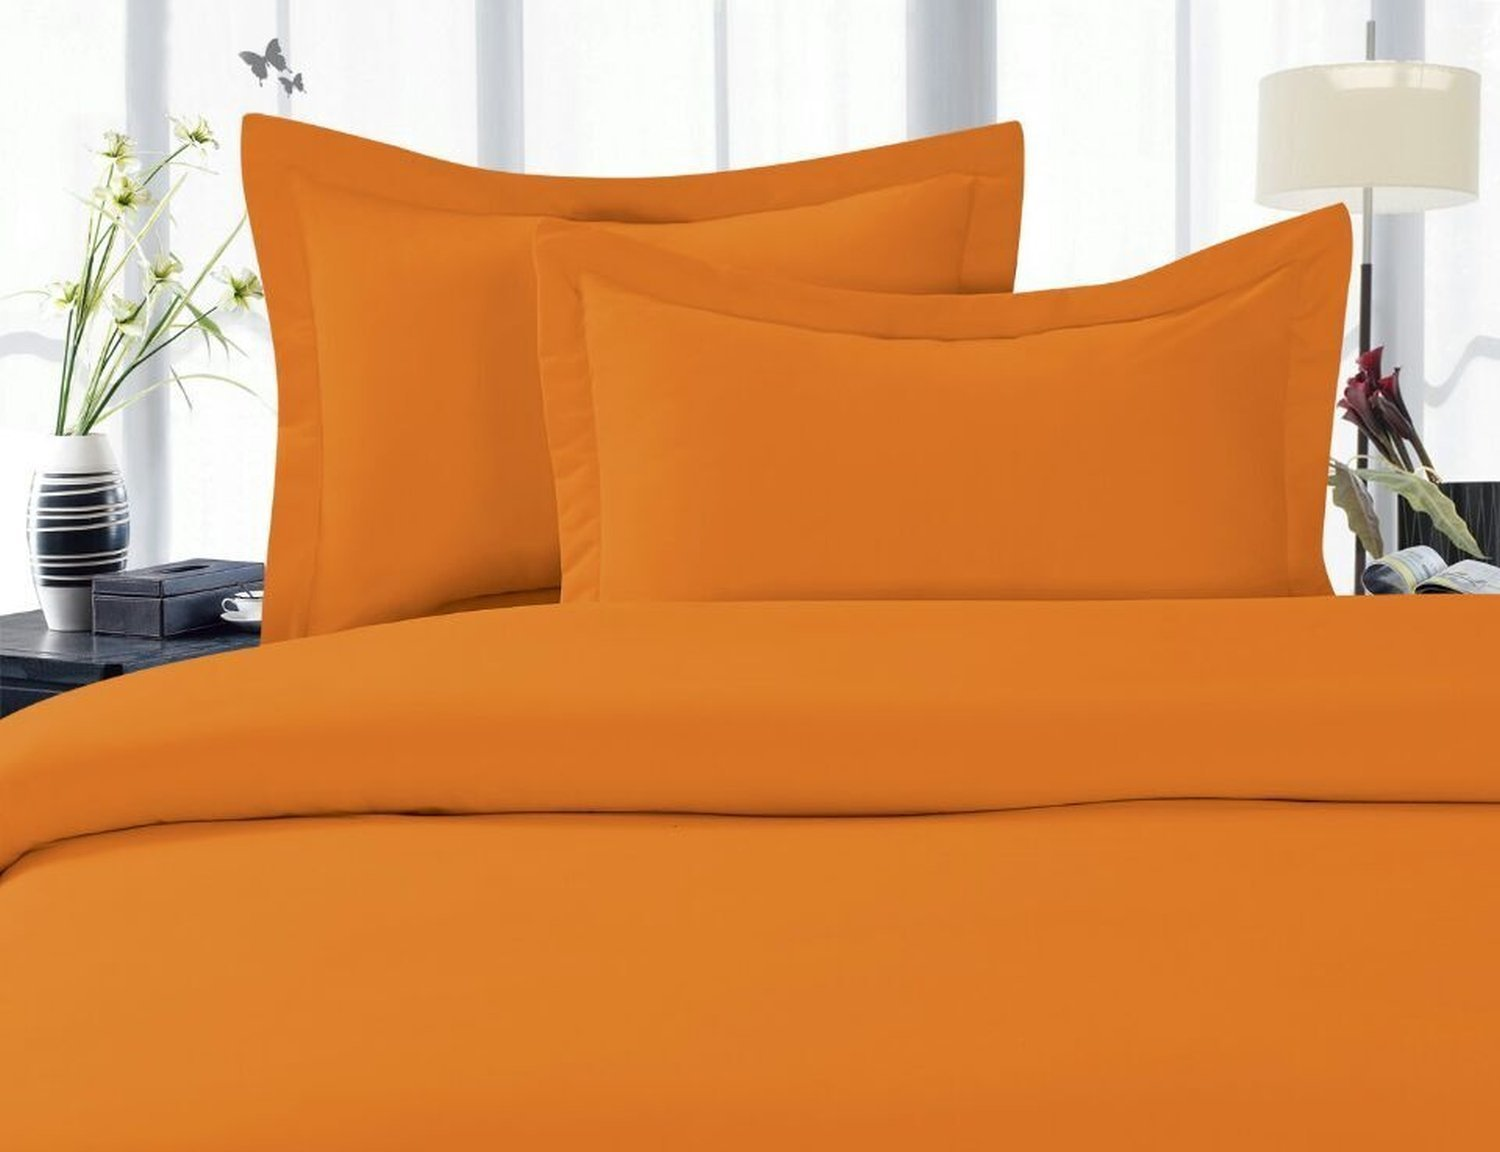 4-Piece Bed Sheet set, Deep Pocket, HypoAllergenic - Full Elite Orange